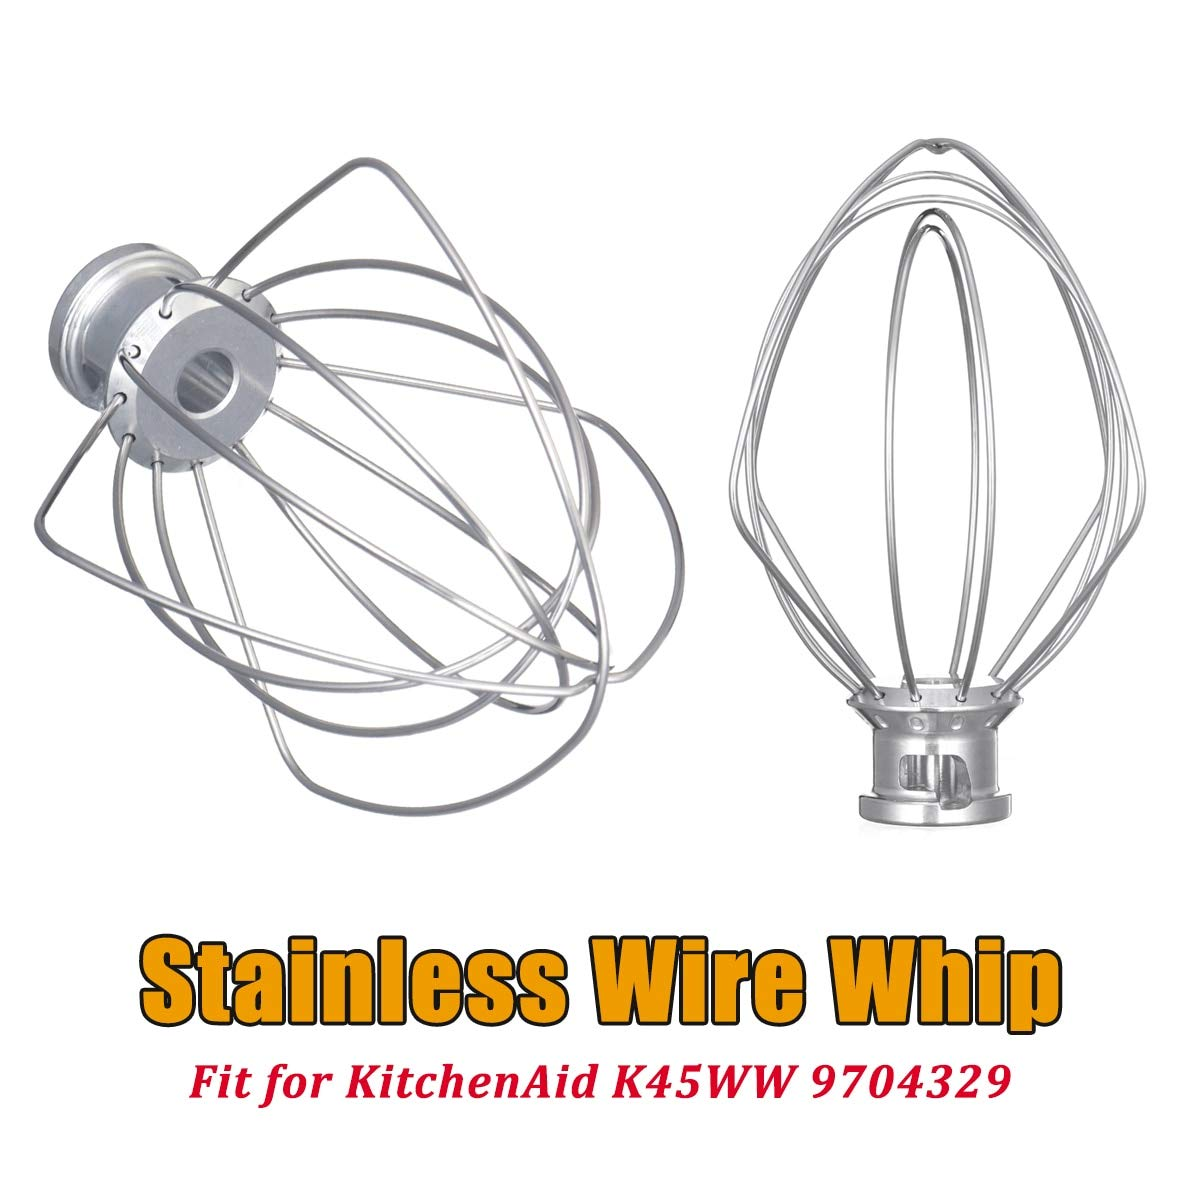 304 Stainless Steel Wire Whip Mixer Attachment For KitchenAid K45WW 9704329 For Mixers Milkshakes Noodle Makers